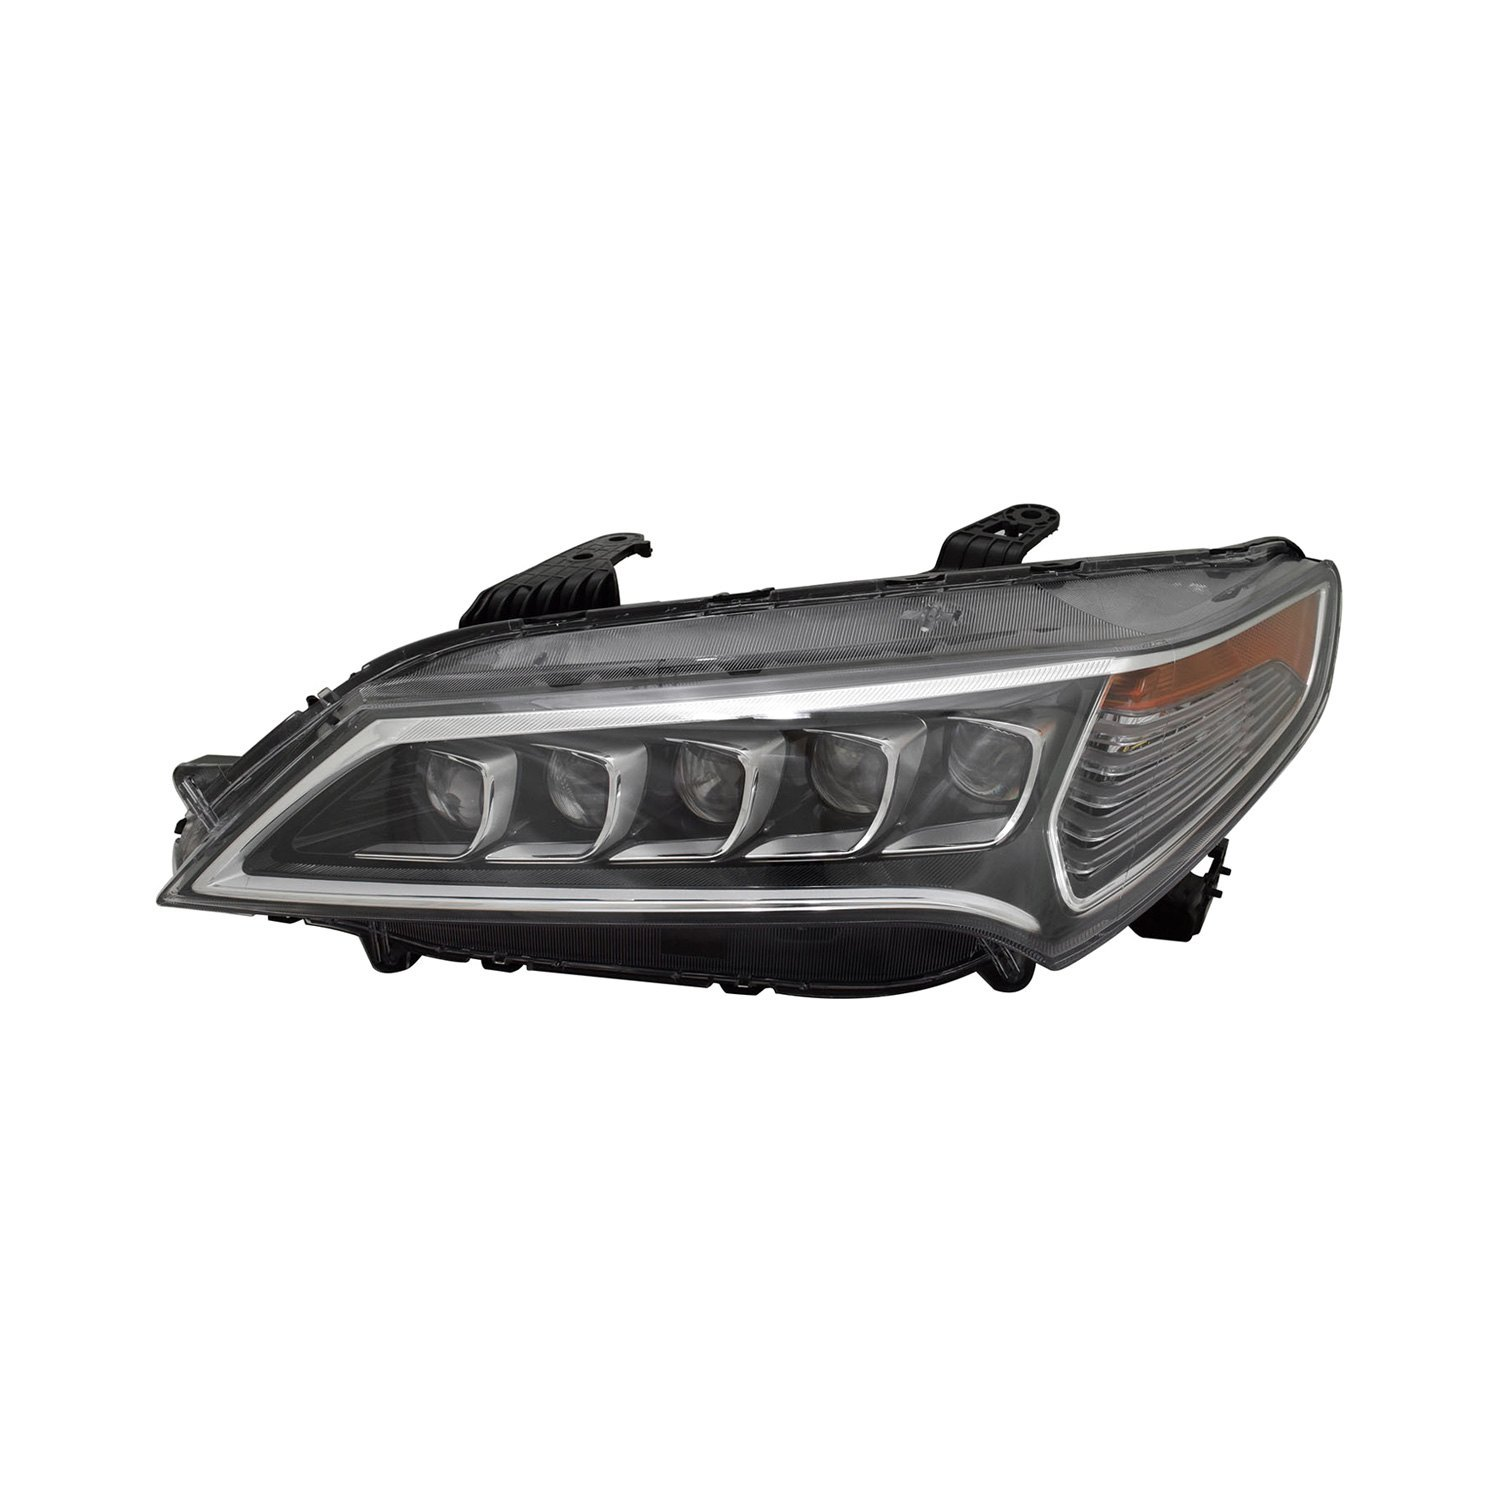 Acura TLX 2016 Replacement Headlight